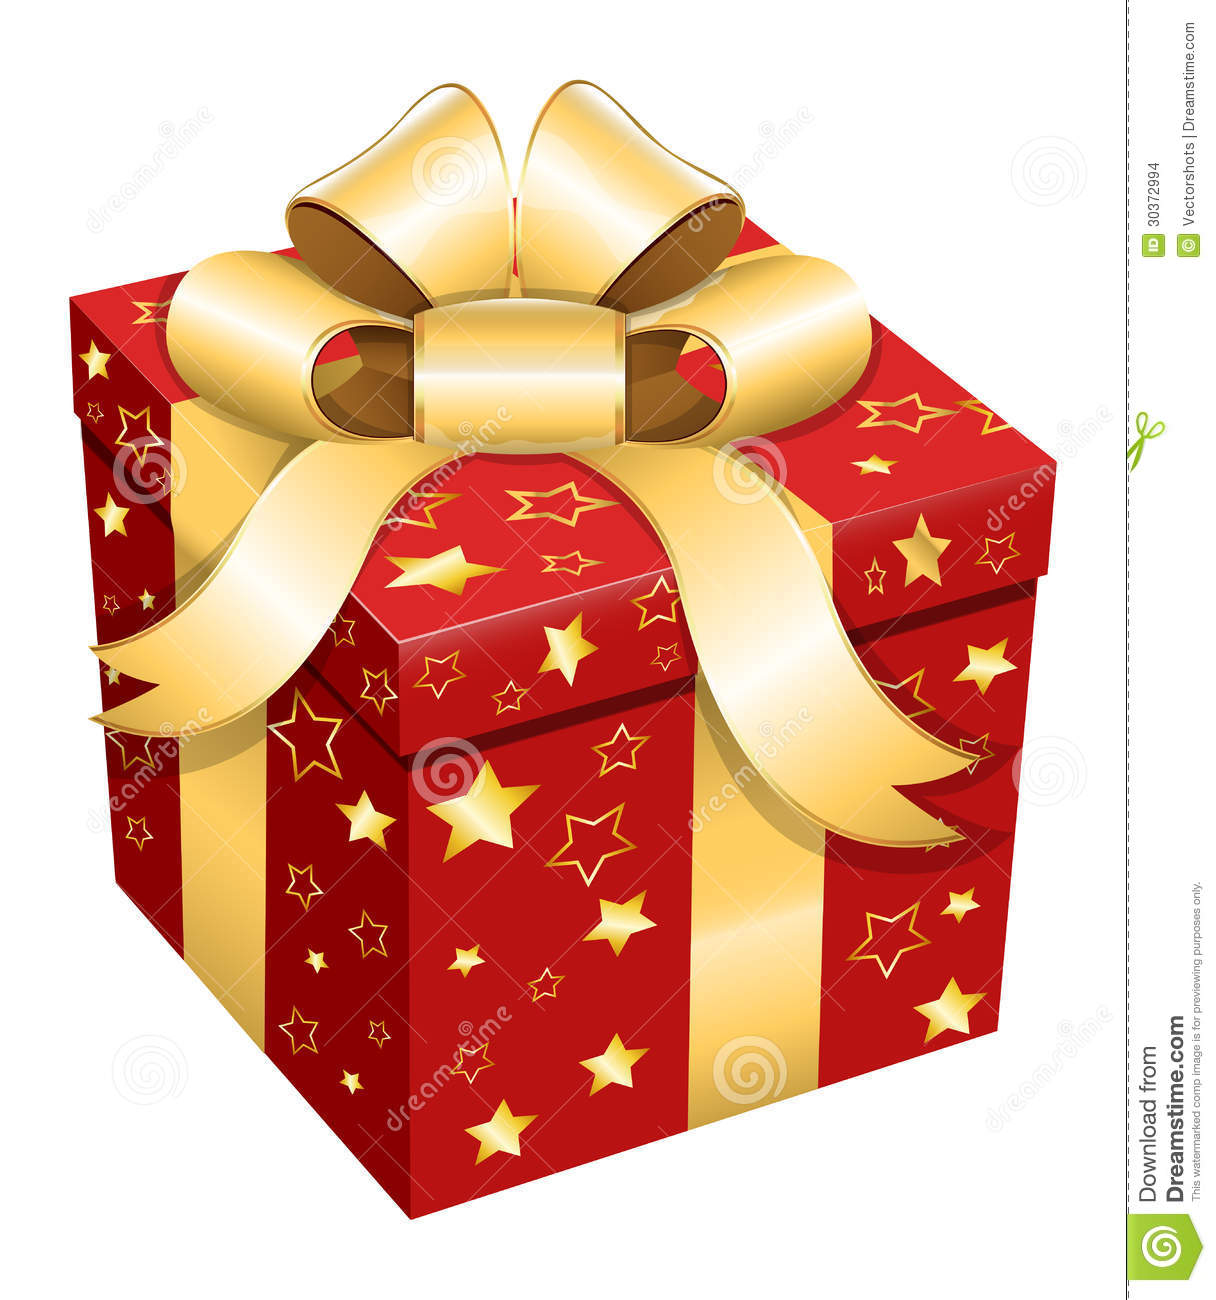 Gift box clipart kid